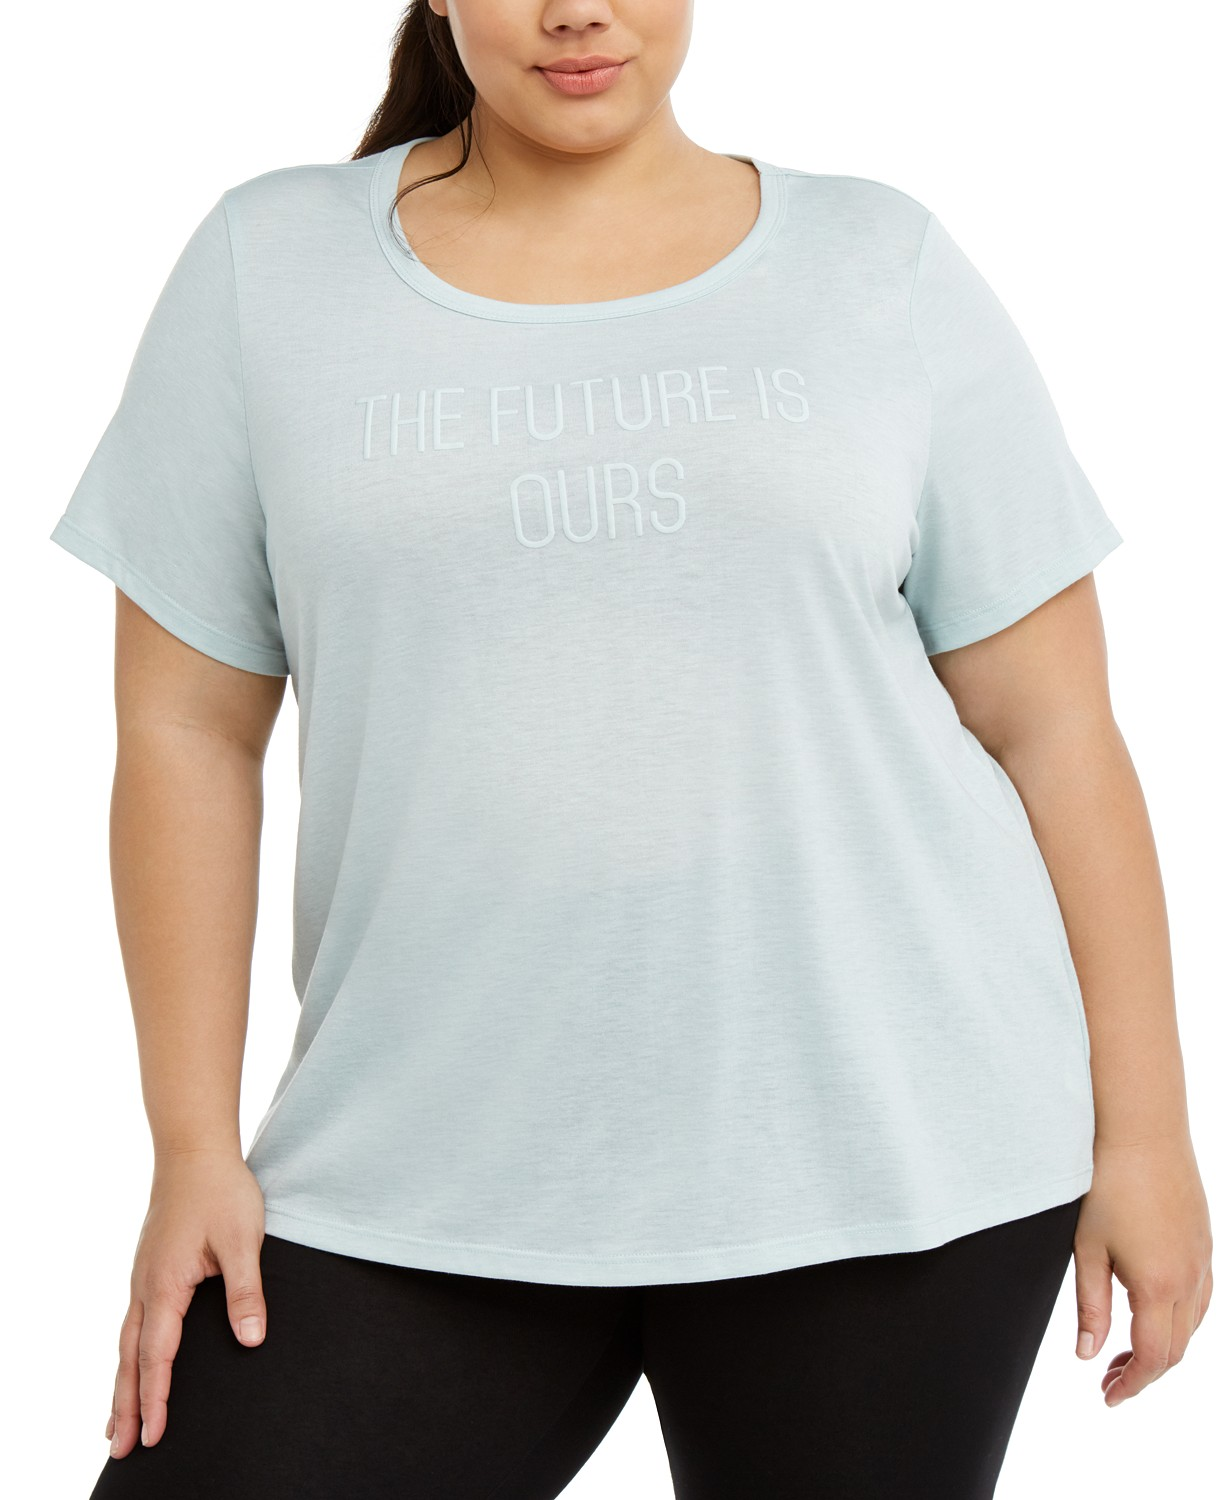 (80% OFF Deal) Plus Size Active Graphic T-Shirt $6.86